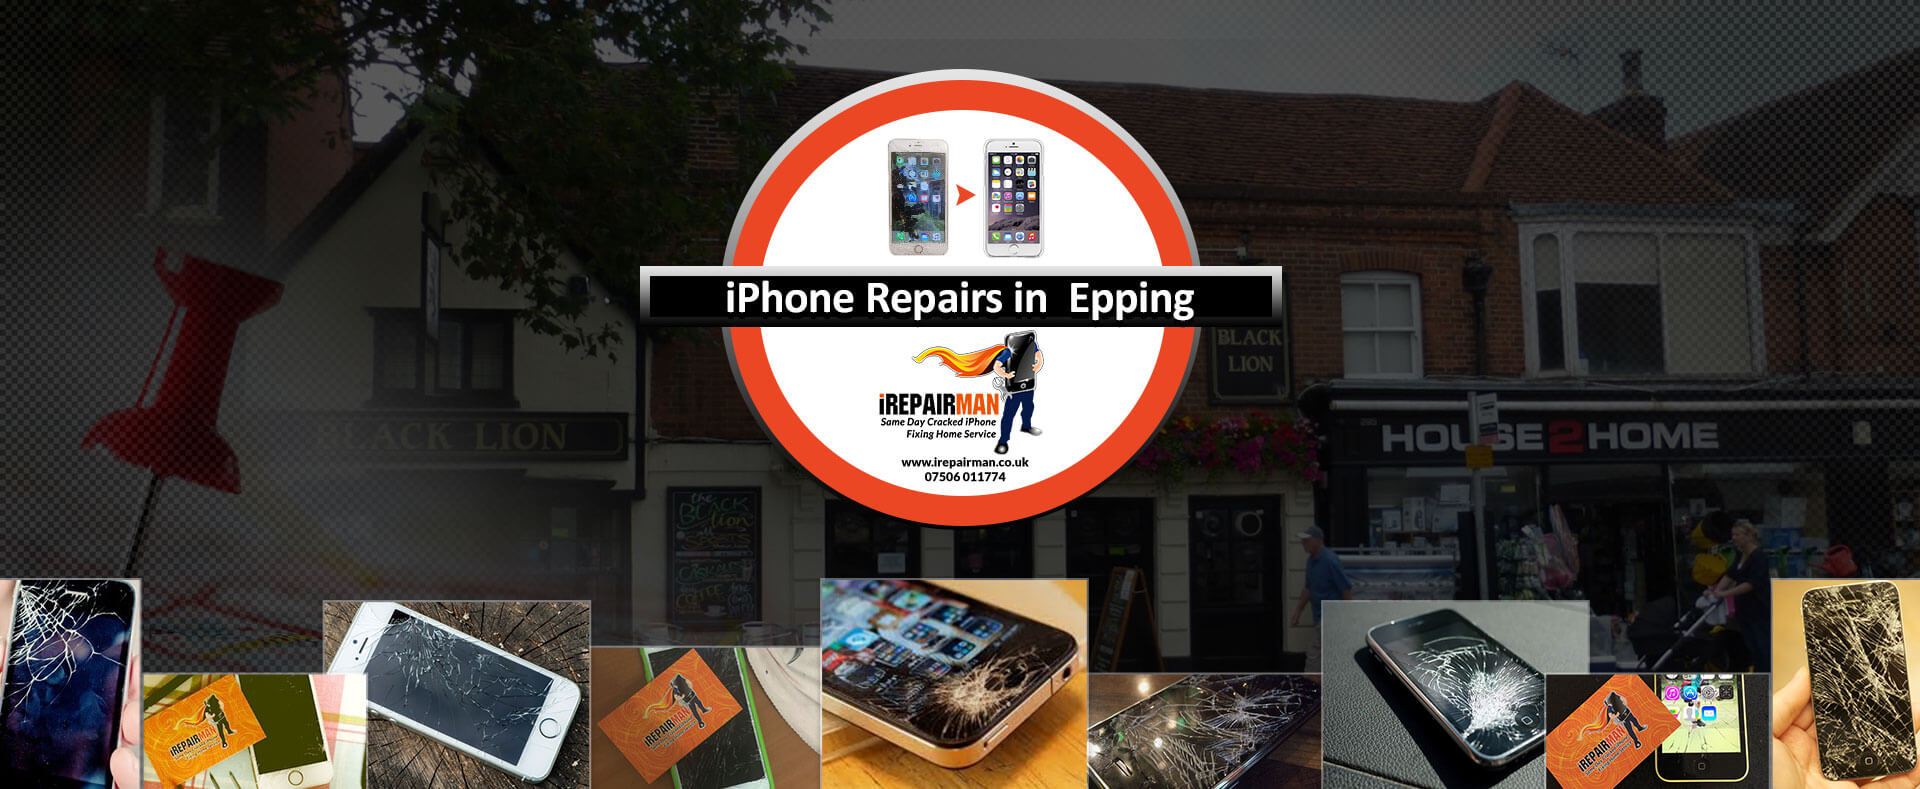 iPhone Repairs in Epping